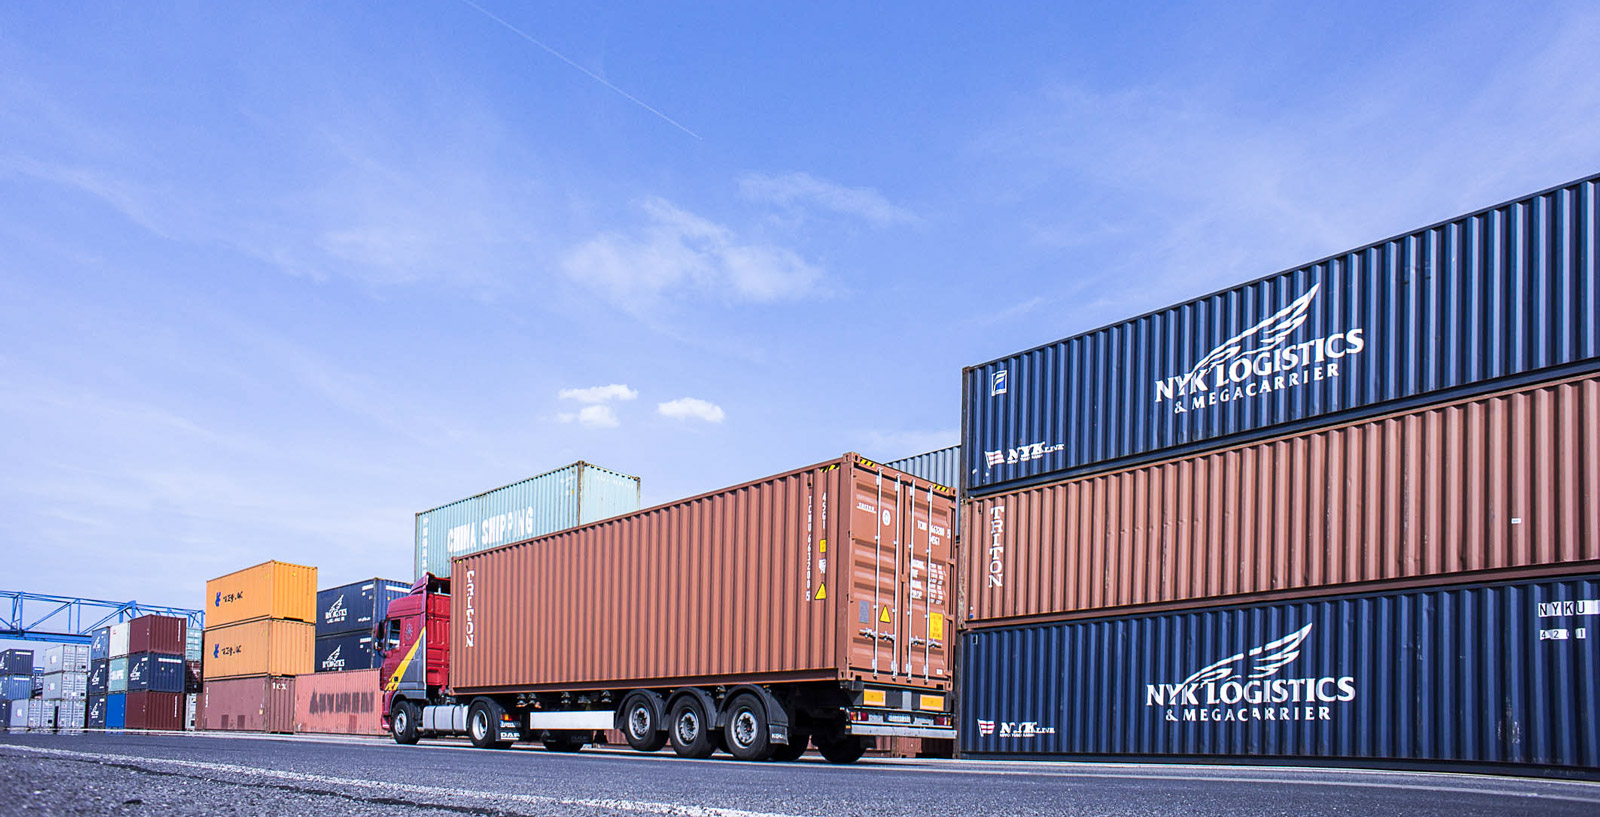 duisport LKW Container NYK Logistics & Megacarrier